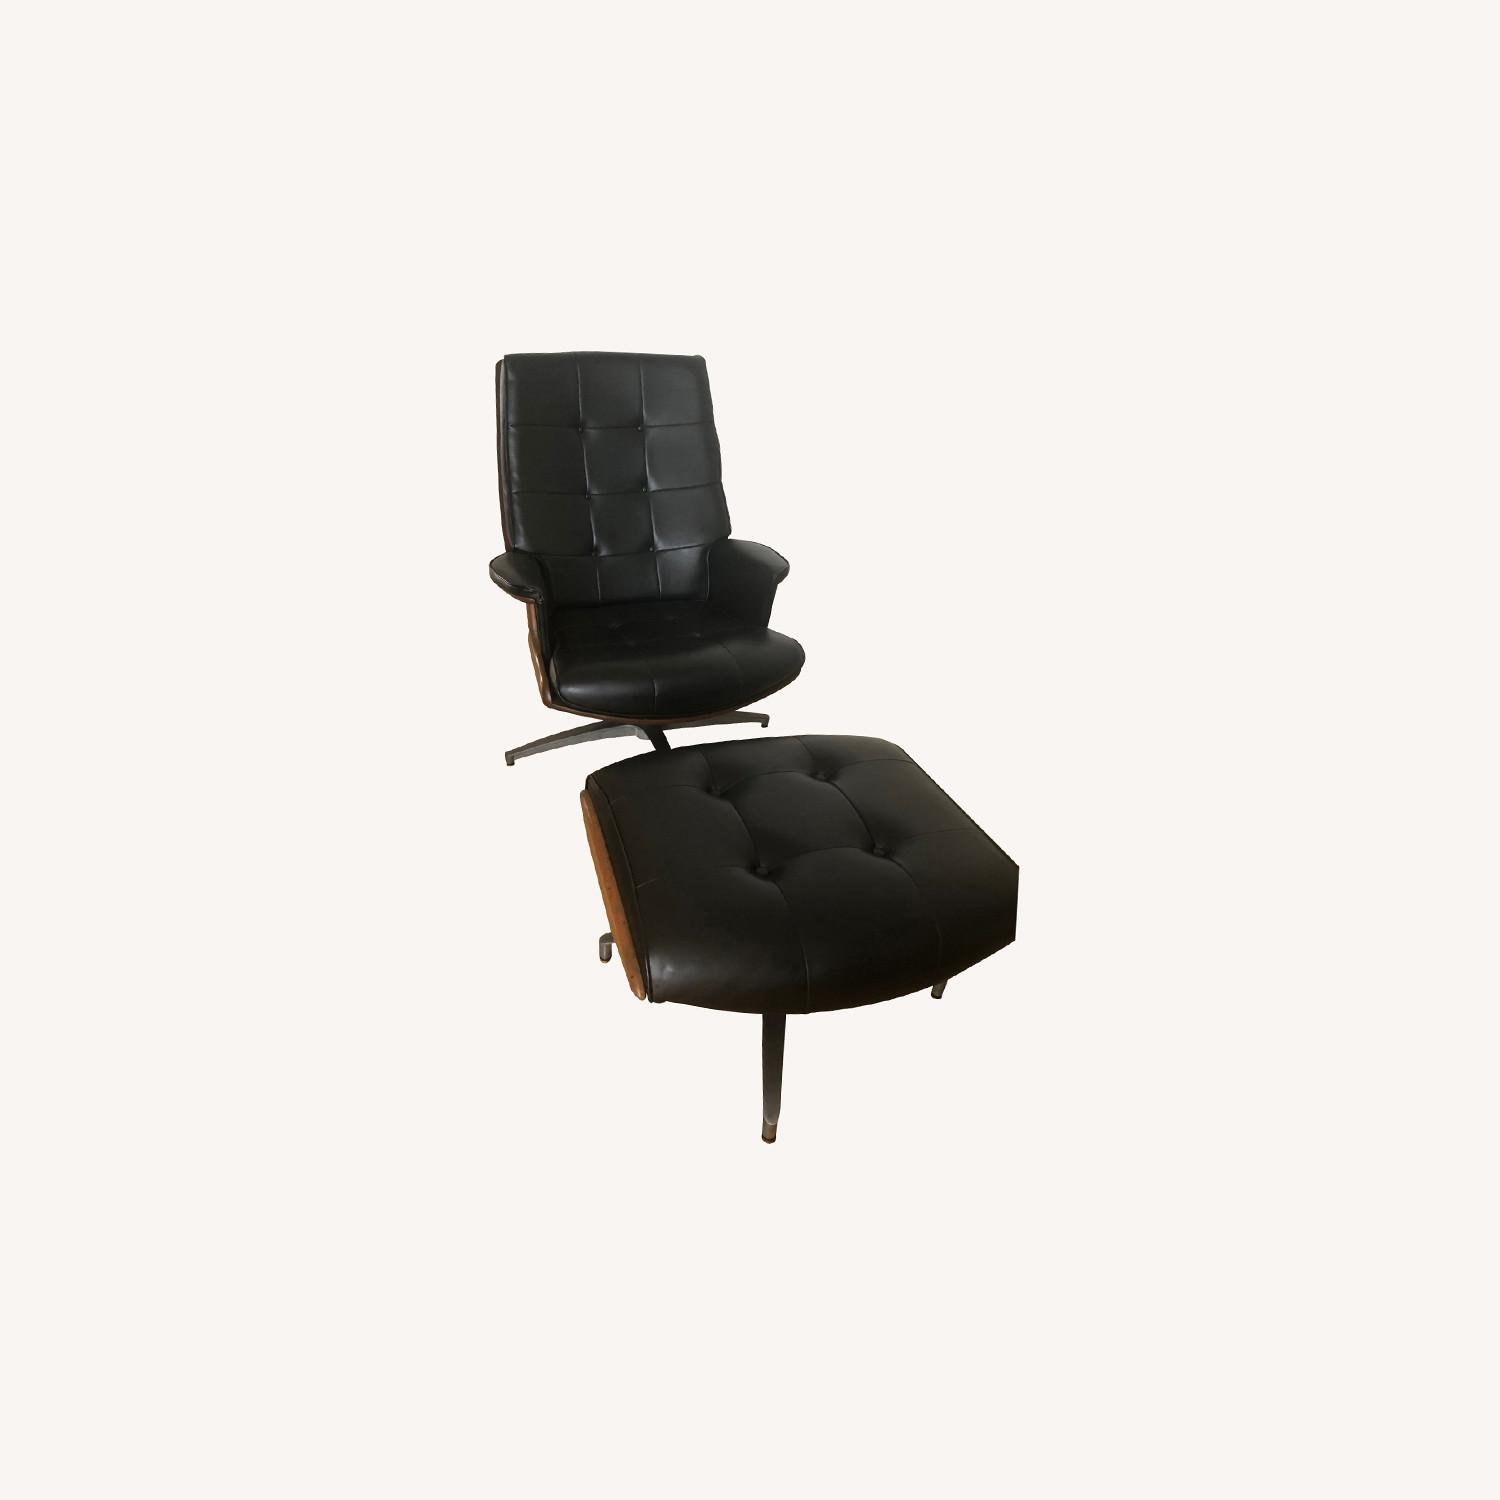 Vintage Black Leather Armchair with Foot Rest - image-0